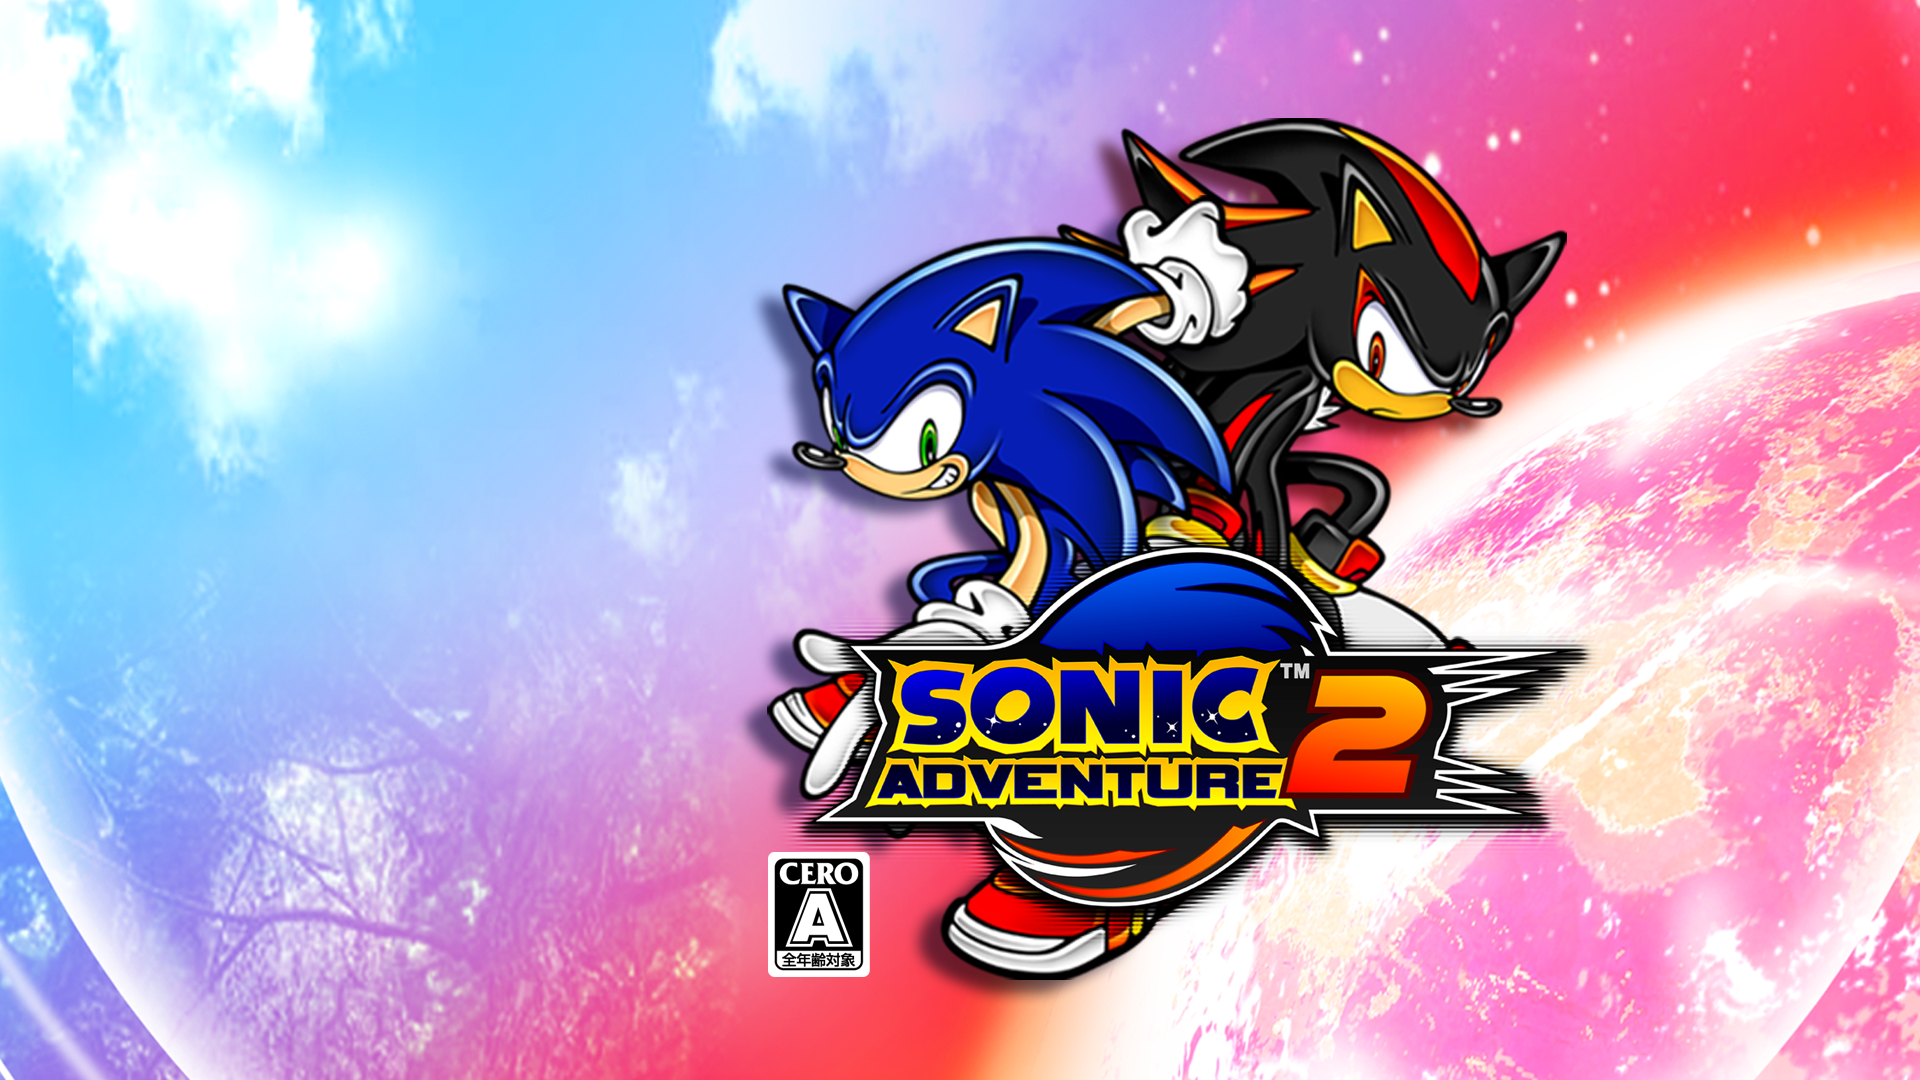 Sonic Adventure 2 Hd Wallpaper Background Image 1920x1080 Id